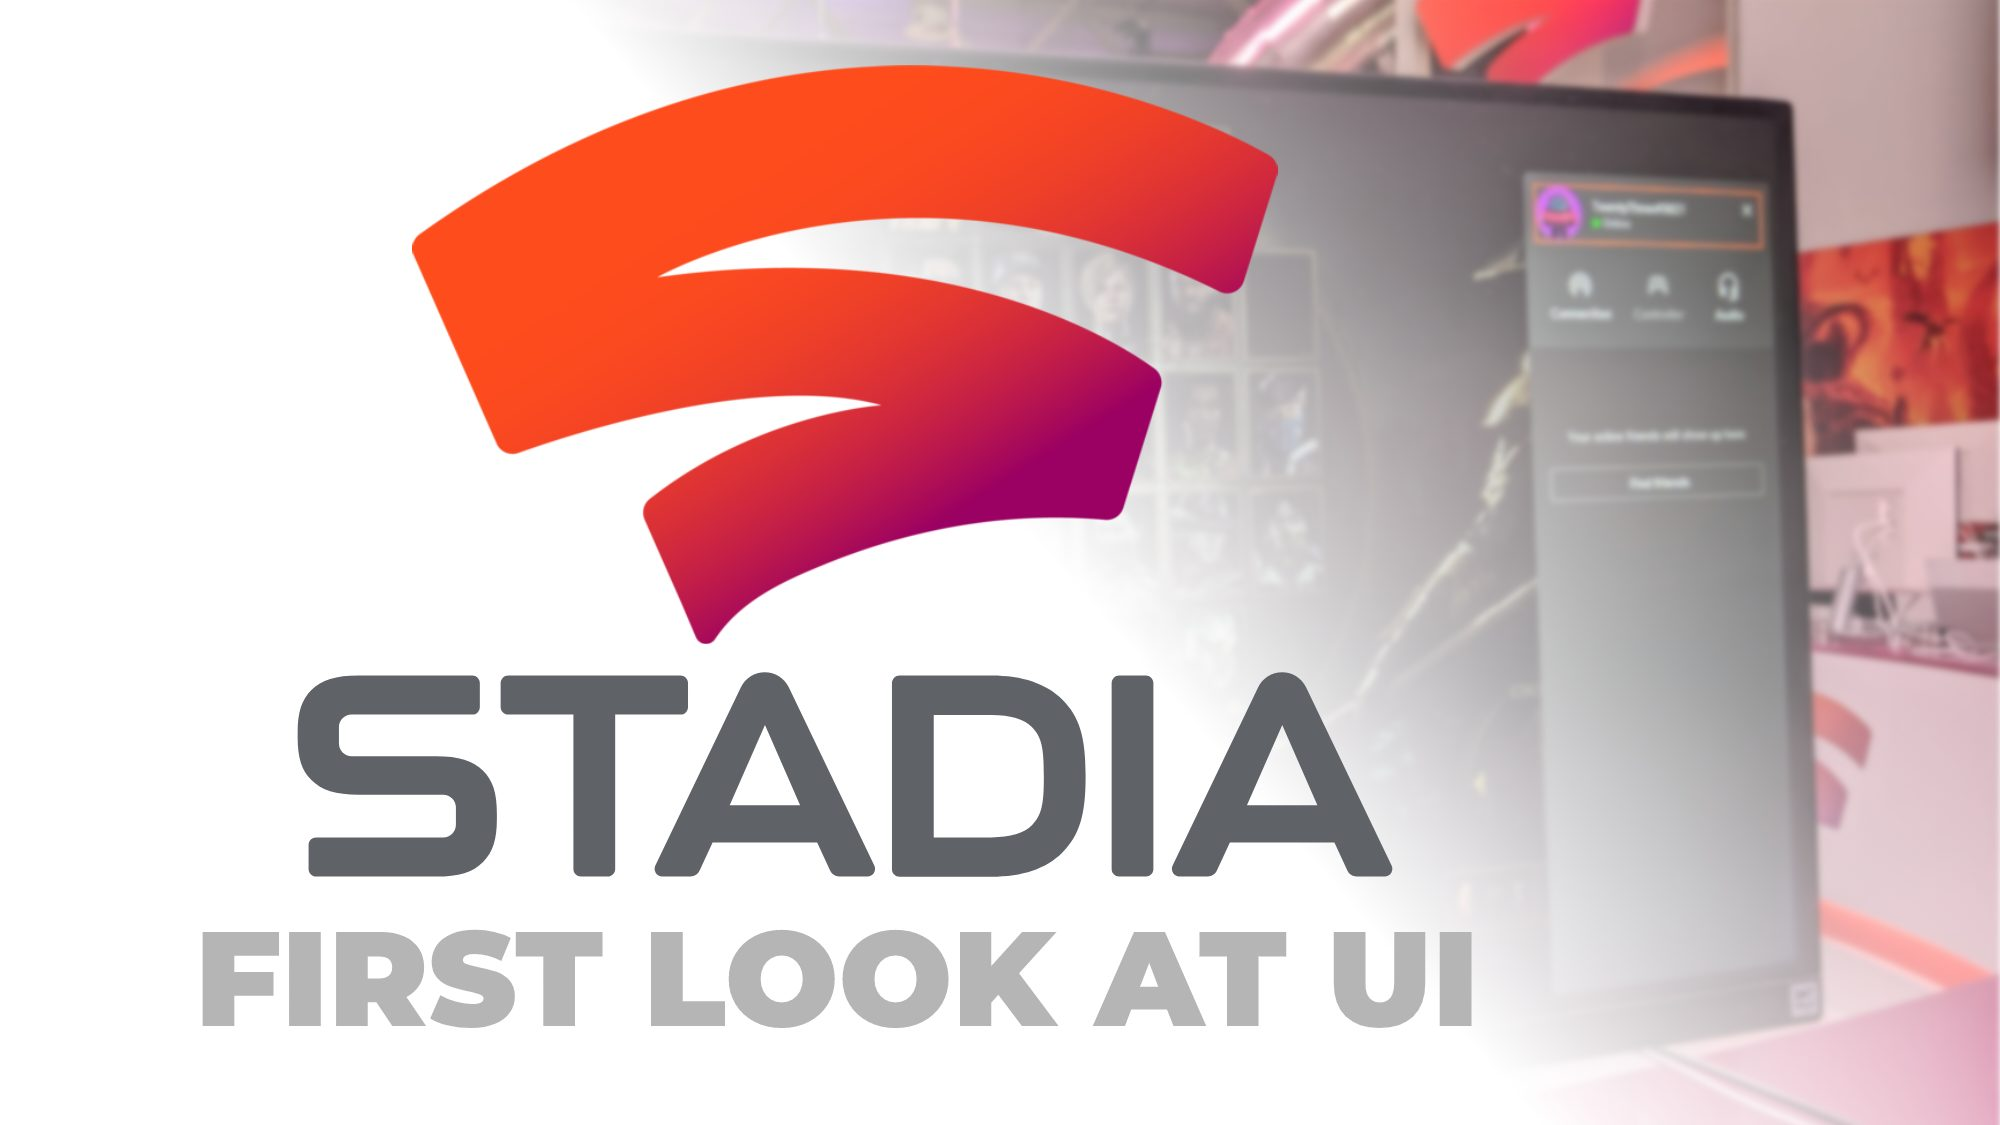 Partial Stadia on-screen UI for Chromecast shown in photo from Gamescom booth